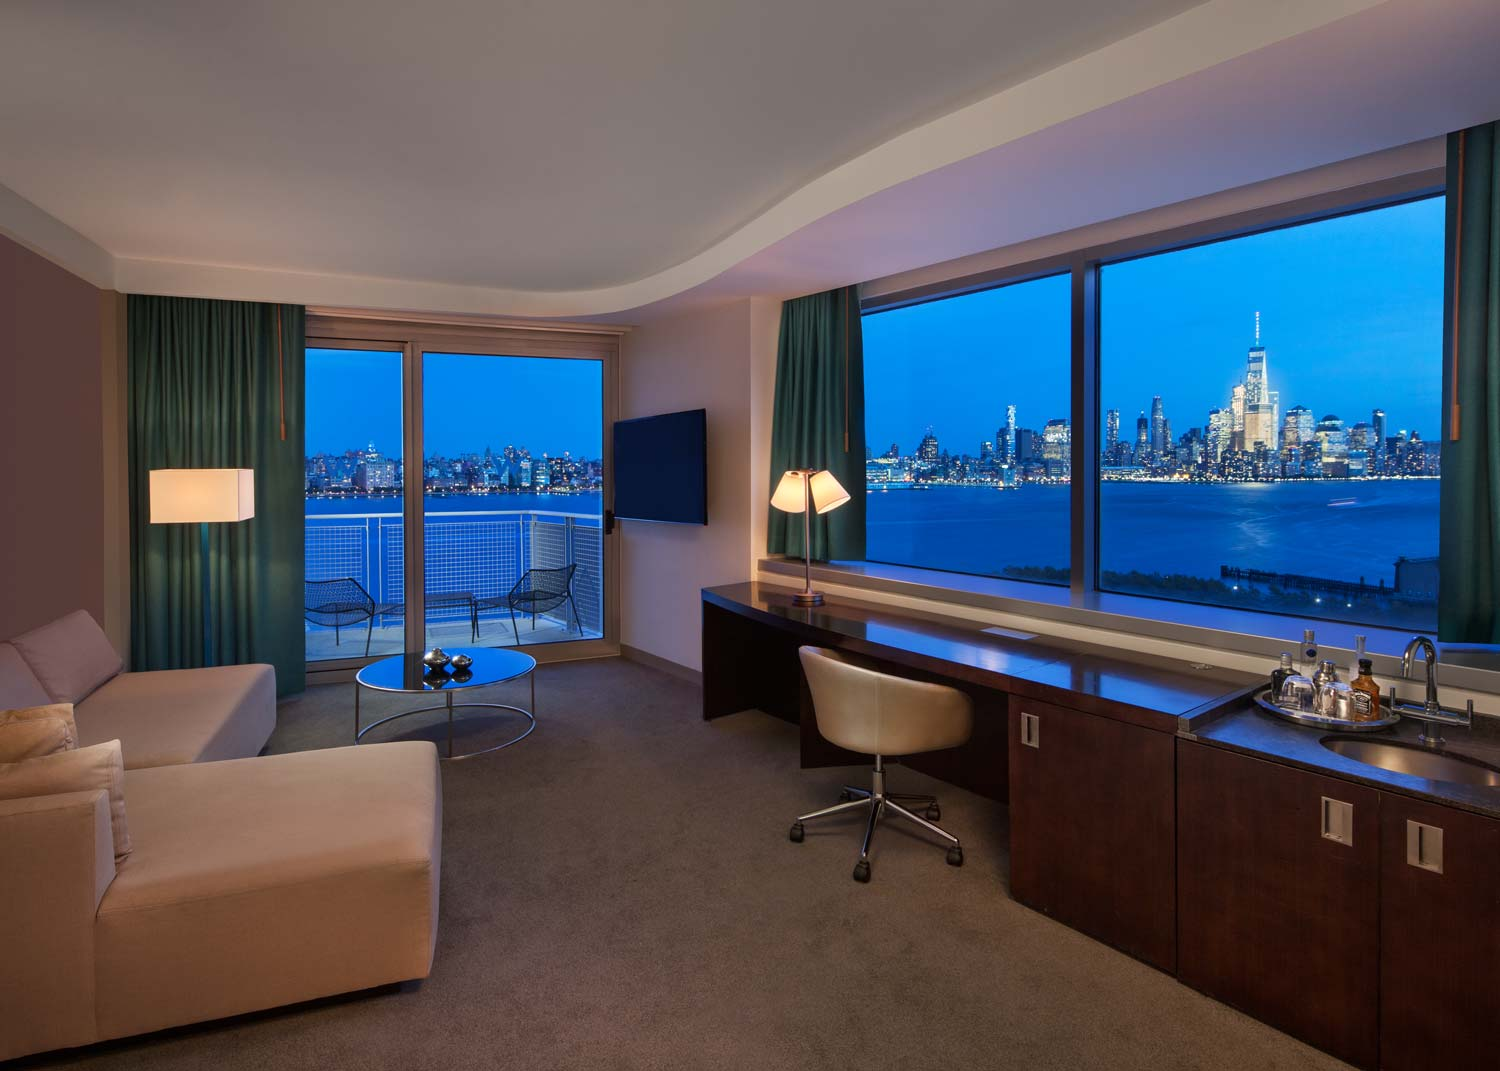 Living Room Suite overlooking river and New York Skyline at night